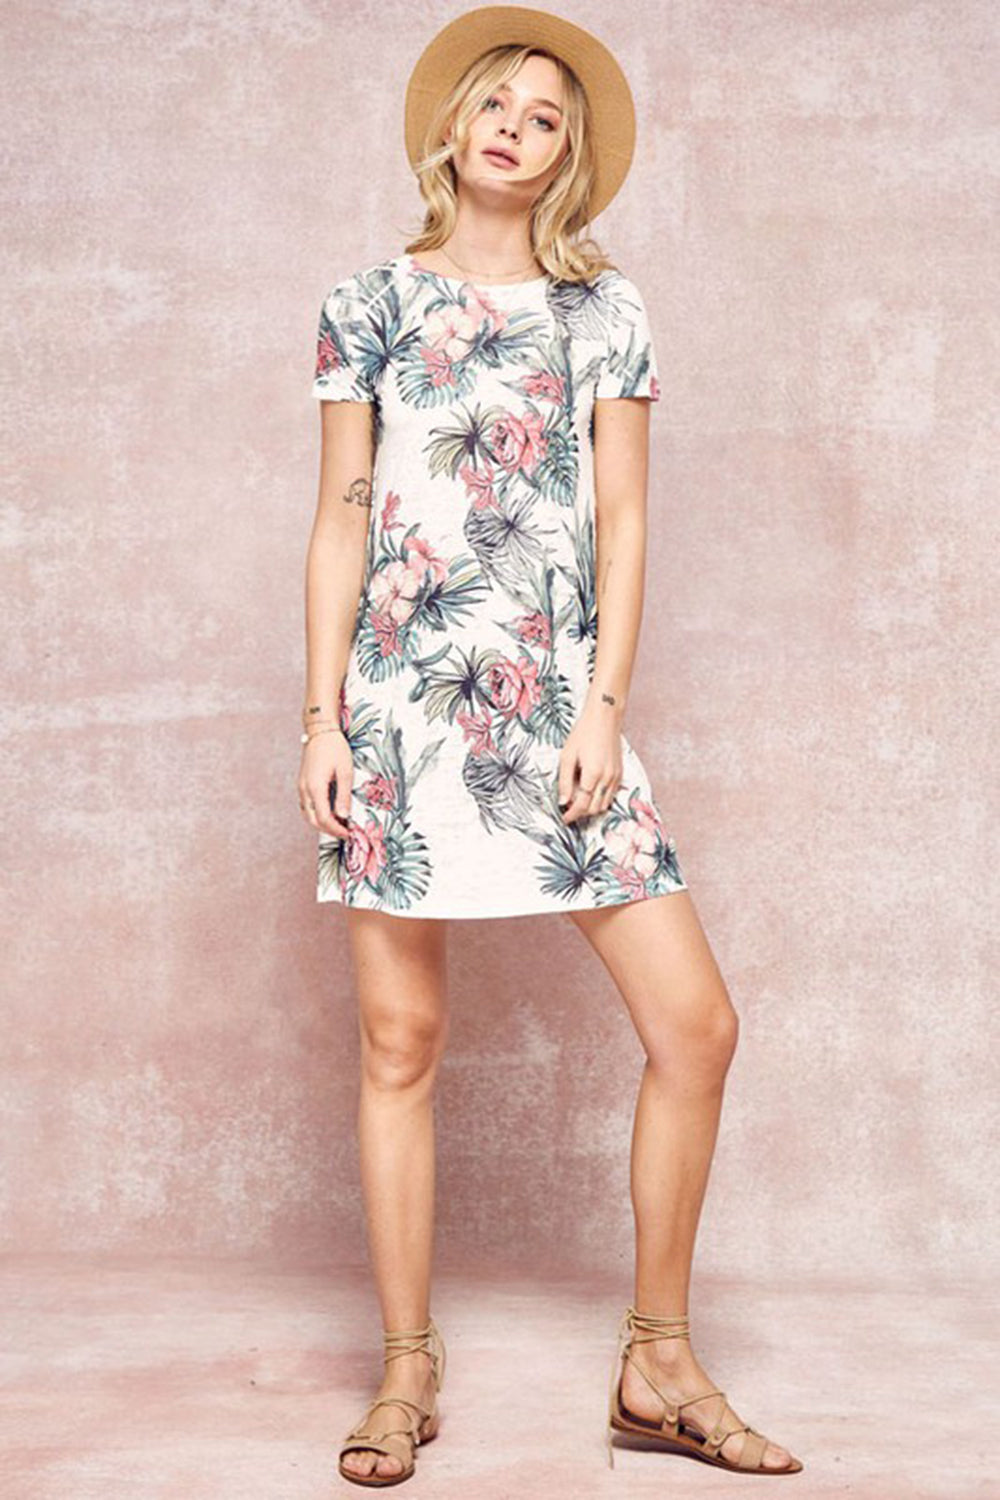 Aynara Fashion Tropical and Floral Print Mini Dress